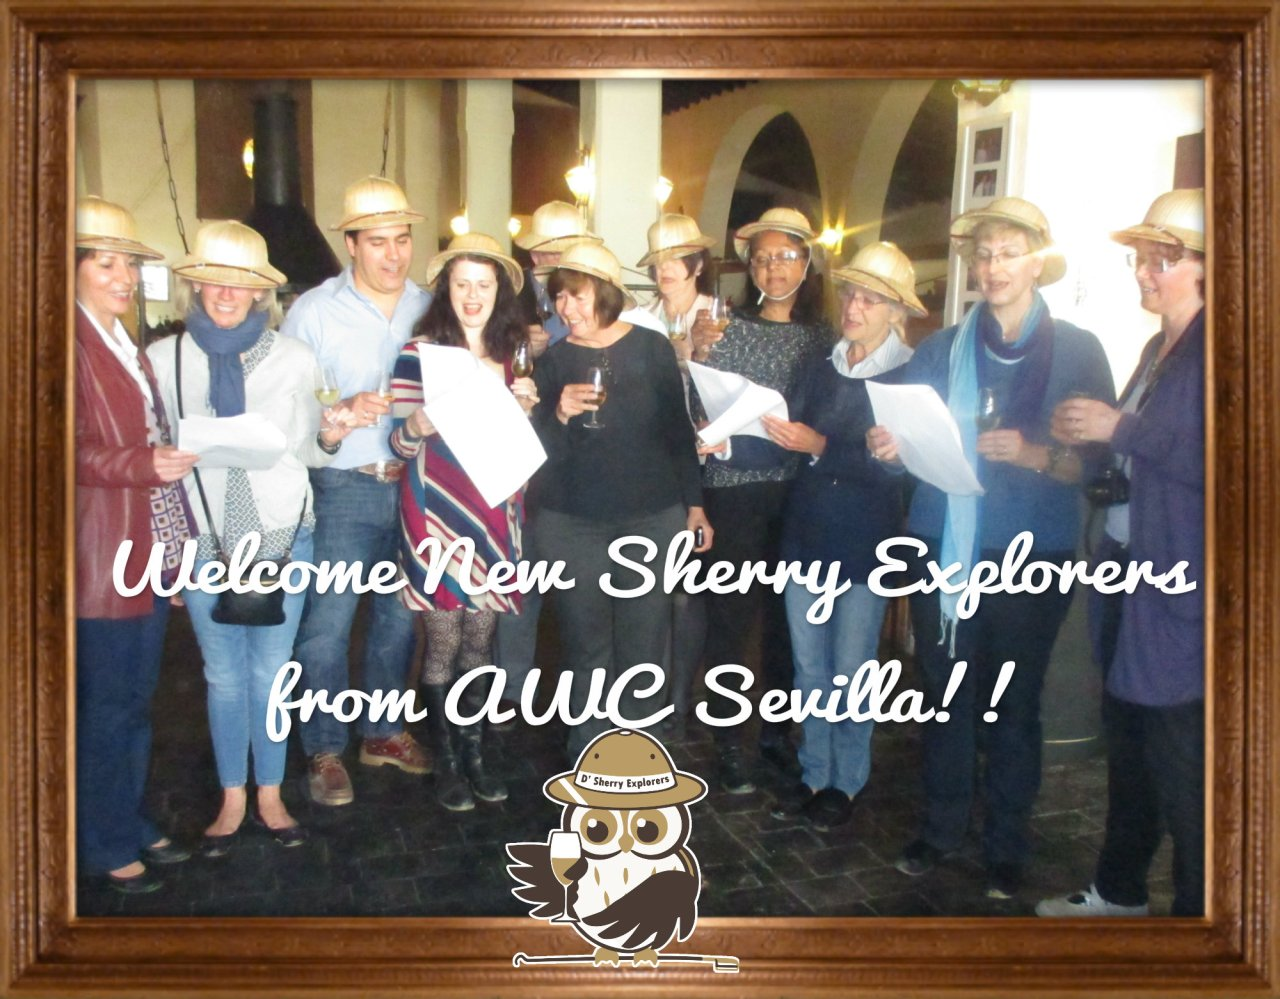 ¡11 Nuevos Sherry Explorers del AWC de Sevilla!  11 New Sherry Explorers from AWC Seville!